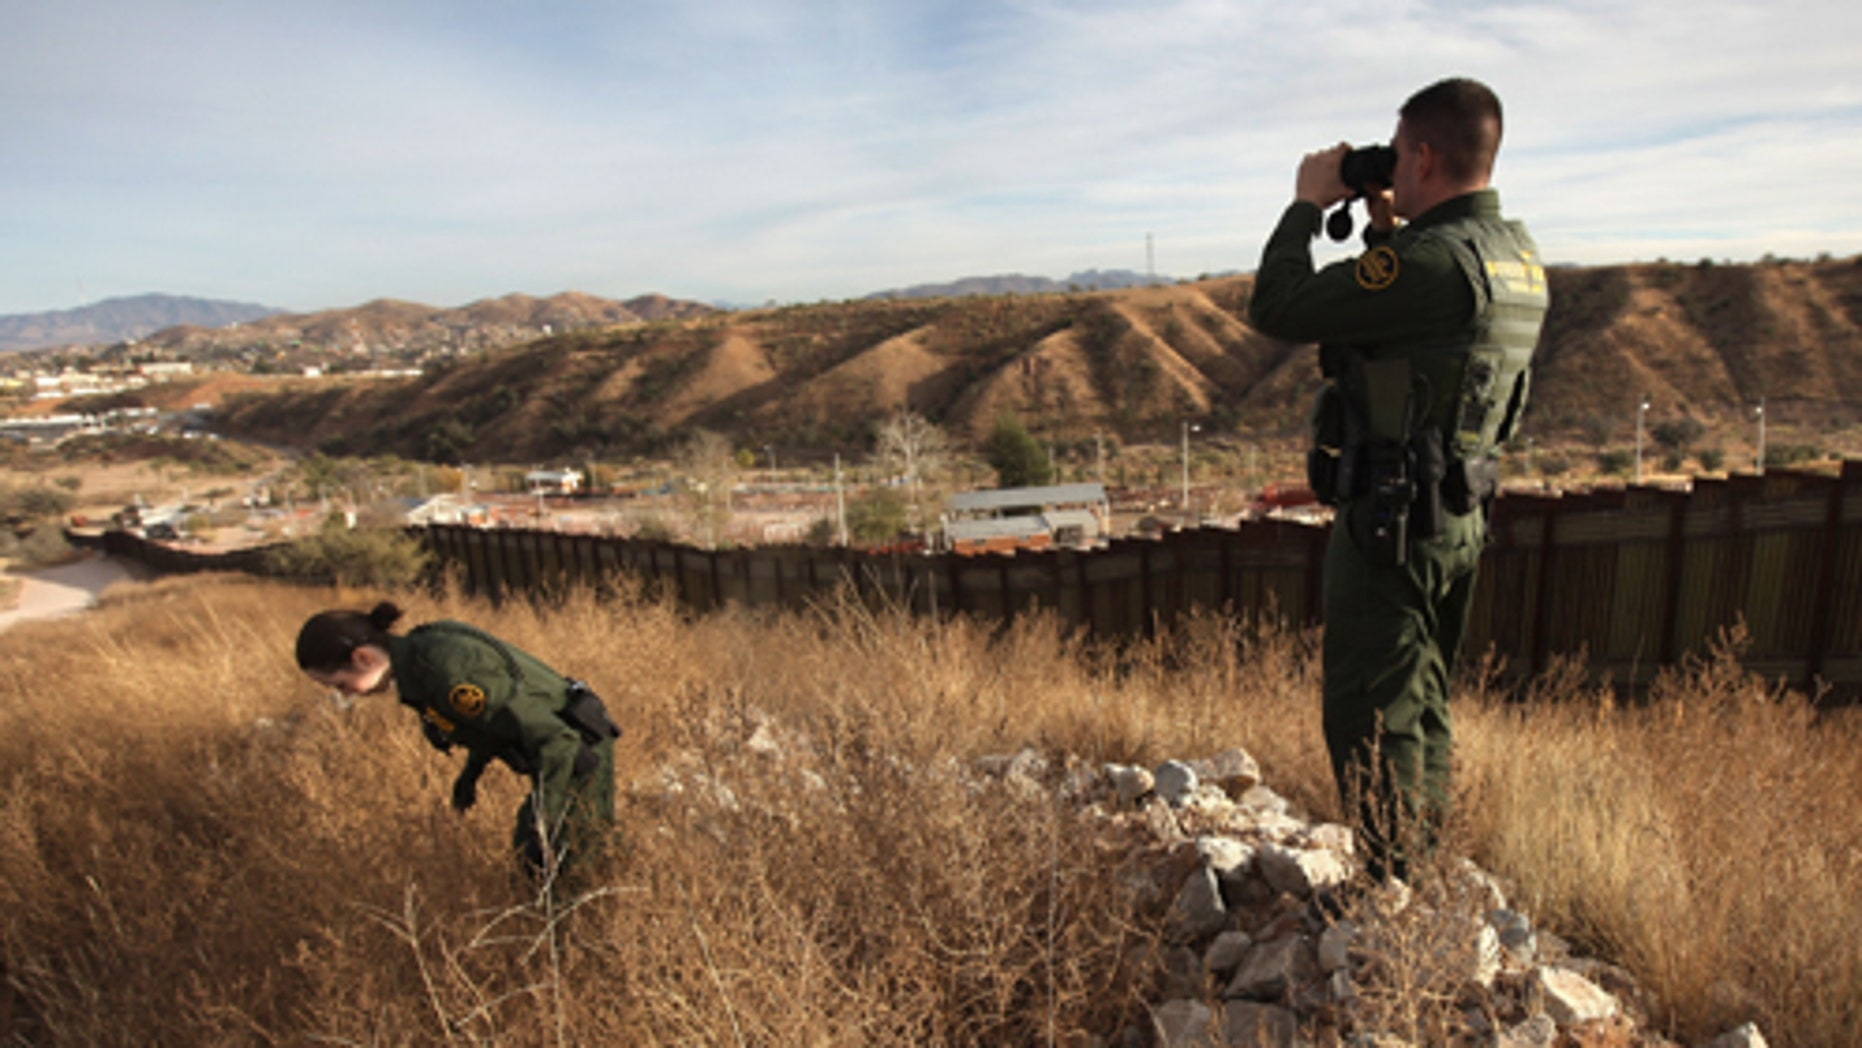 NOGALES, AZ - DECEMBER 07:  U.S. Border Patrol agents Richard Funke and Colleen Agle look for illegal immigrants crossing the U.S.- Mexico border on December 7, 2010 near Nogales, Arizona. Although a new fence has been built along the majority of Arizona's border with Mexico, critics have called for fencing of the entire stretch. Much of the unfenced terrain is in remote and mountainous areas. Although illegal immigration has slowed all along the U.S. Mexico border, Border Patrol officials say the Tucson sector remains the most heavily trafficked in the nation.  (Photo by John Moore/Getty Images)